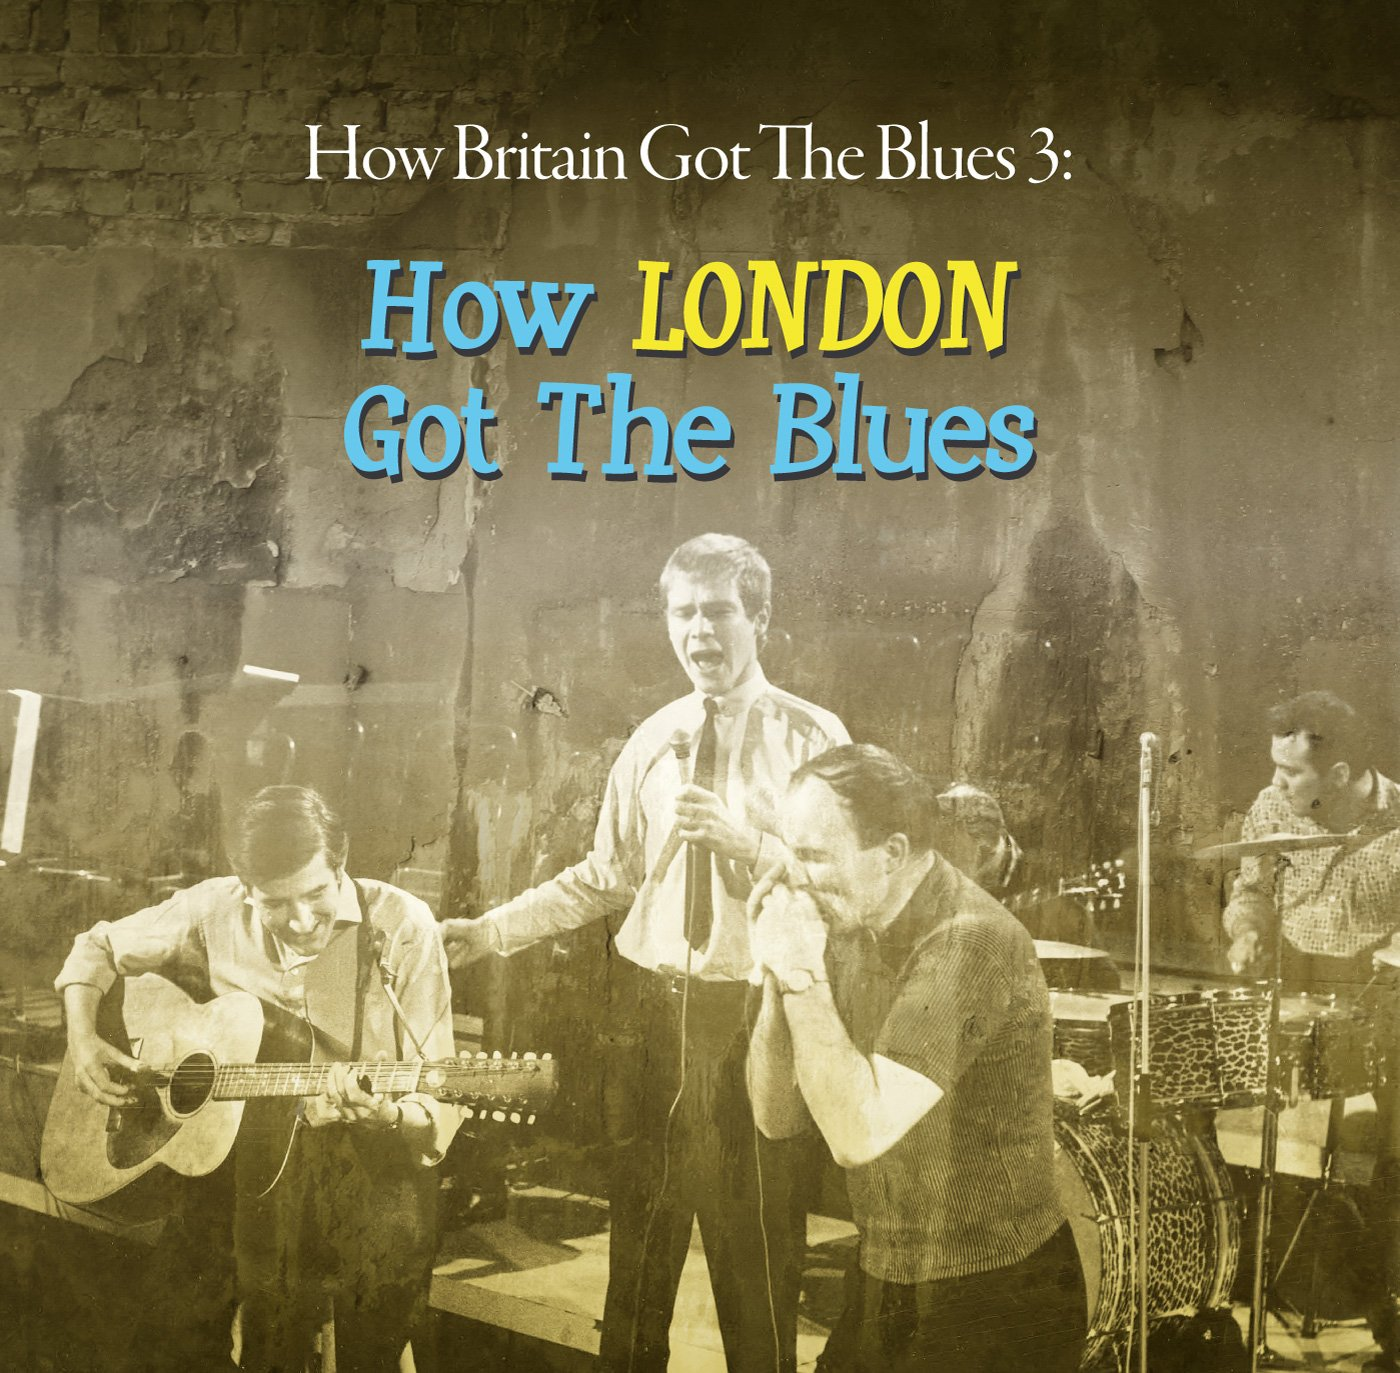 How London Got The Blues